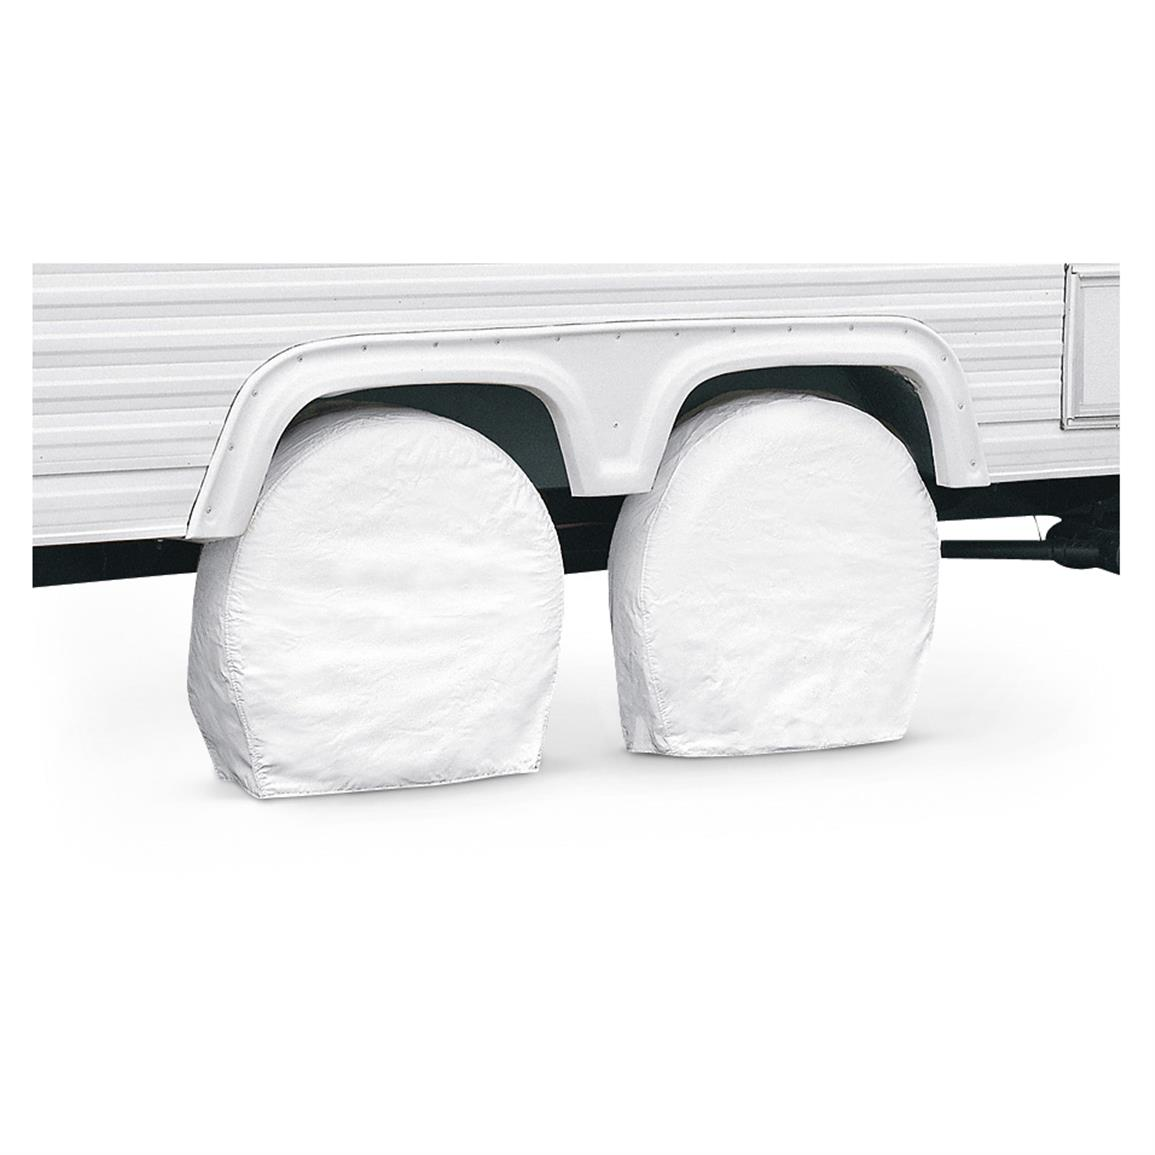 Classic Accessories RV Wheel Covers, 2 Pack, White